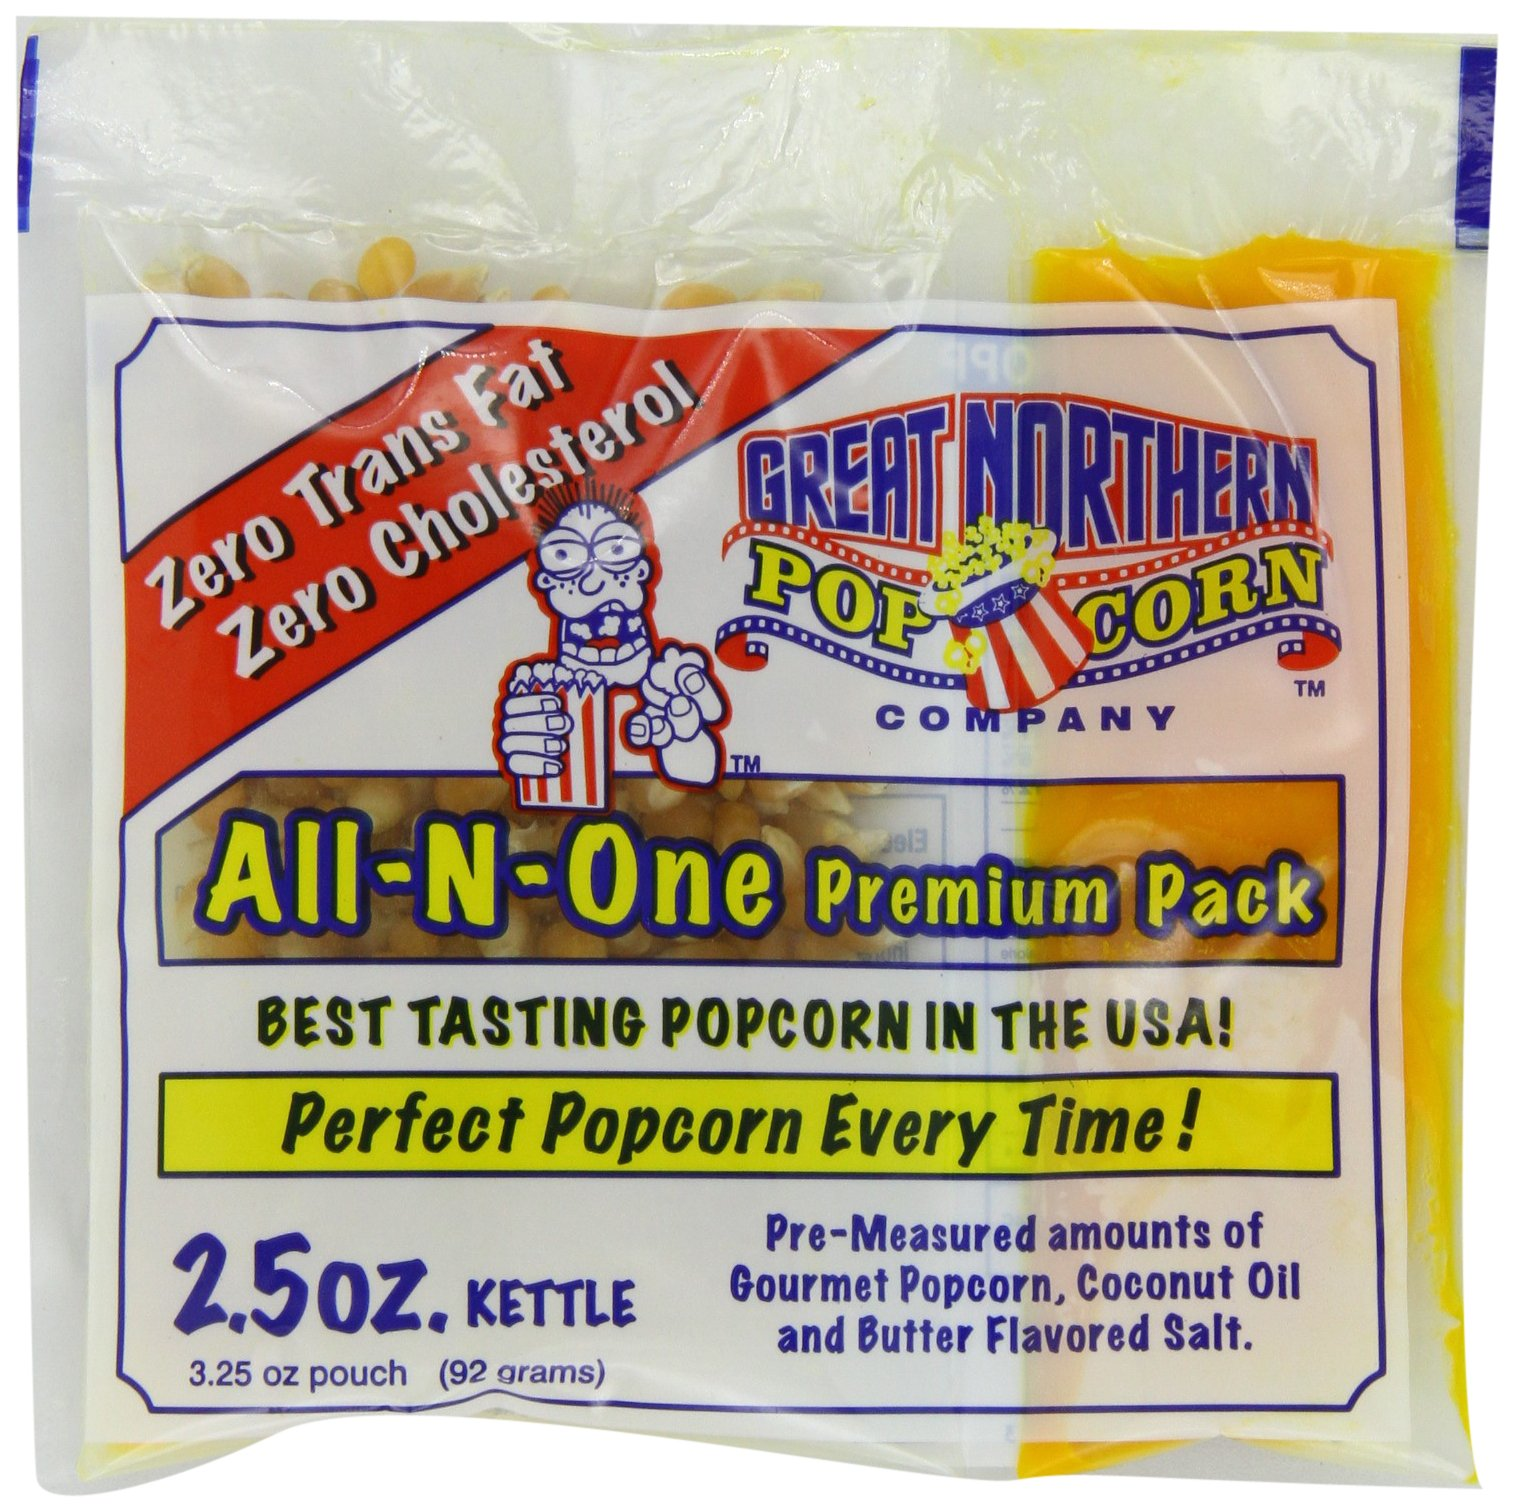 4099 Great Northern Popcorn Premium 2.5 Ounce Popcorn Portion Packs, Case of 24 by Great Northern Popcorn Company